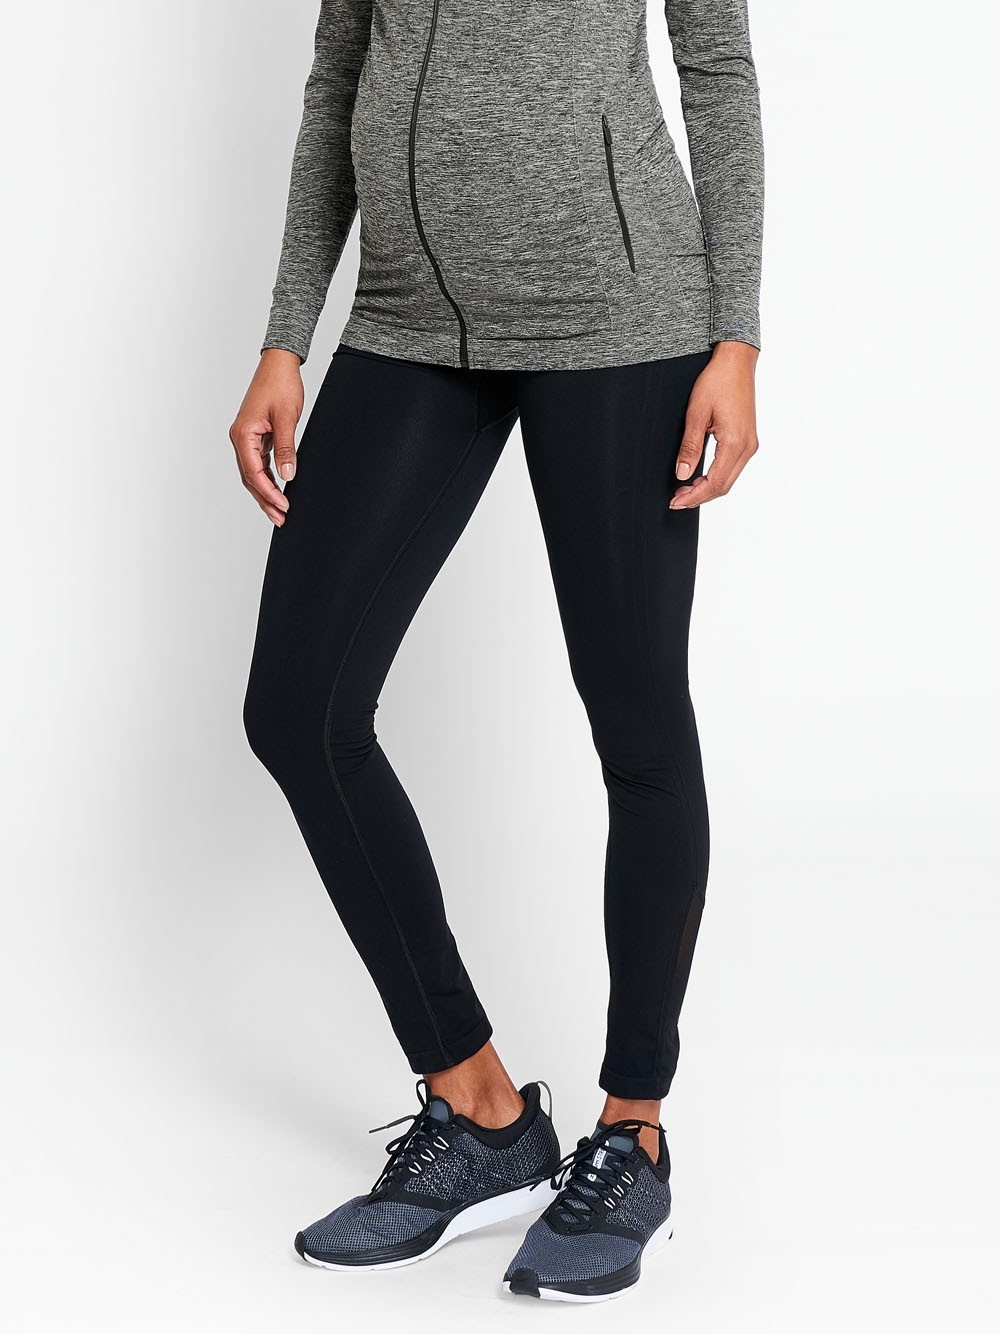 Black Active Support Maternity Leggings